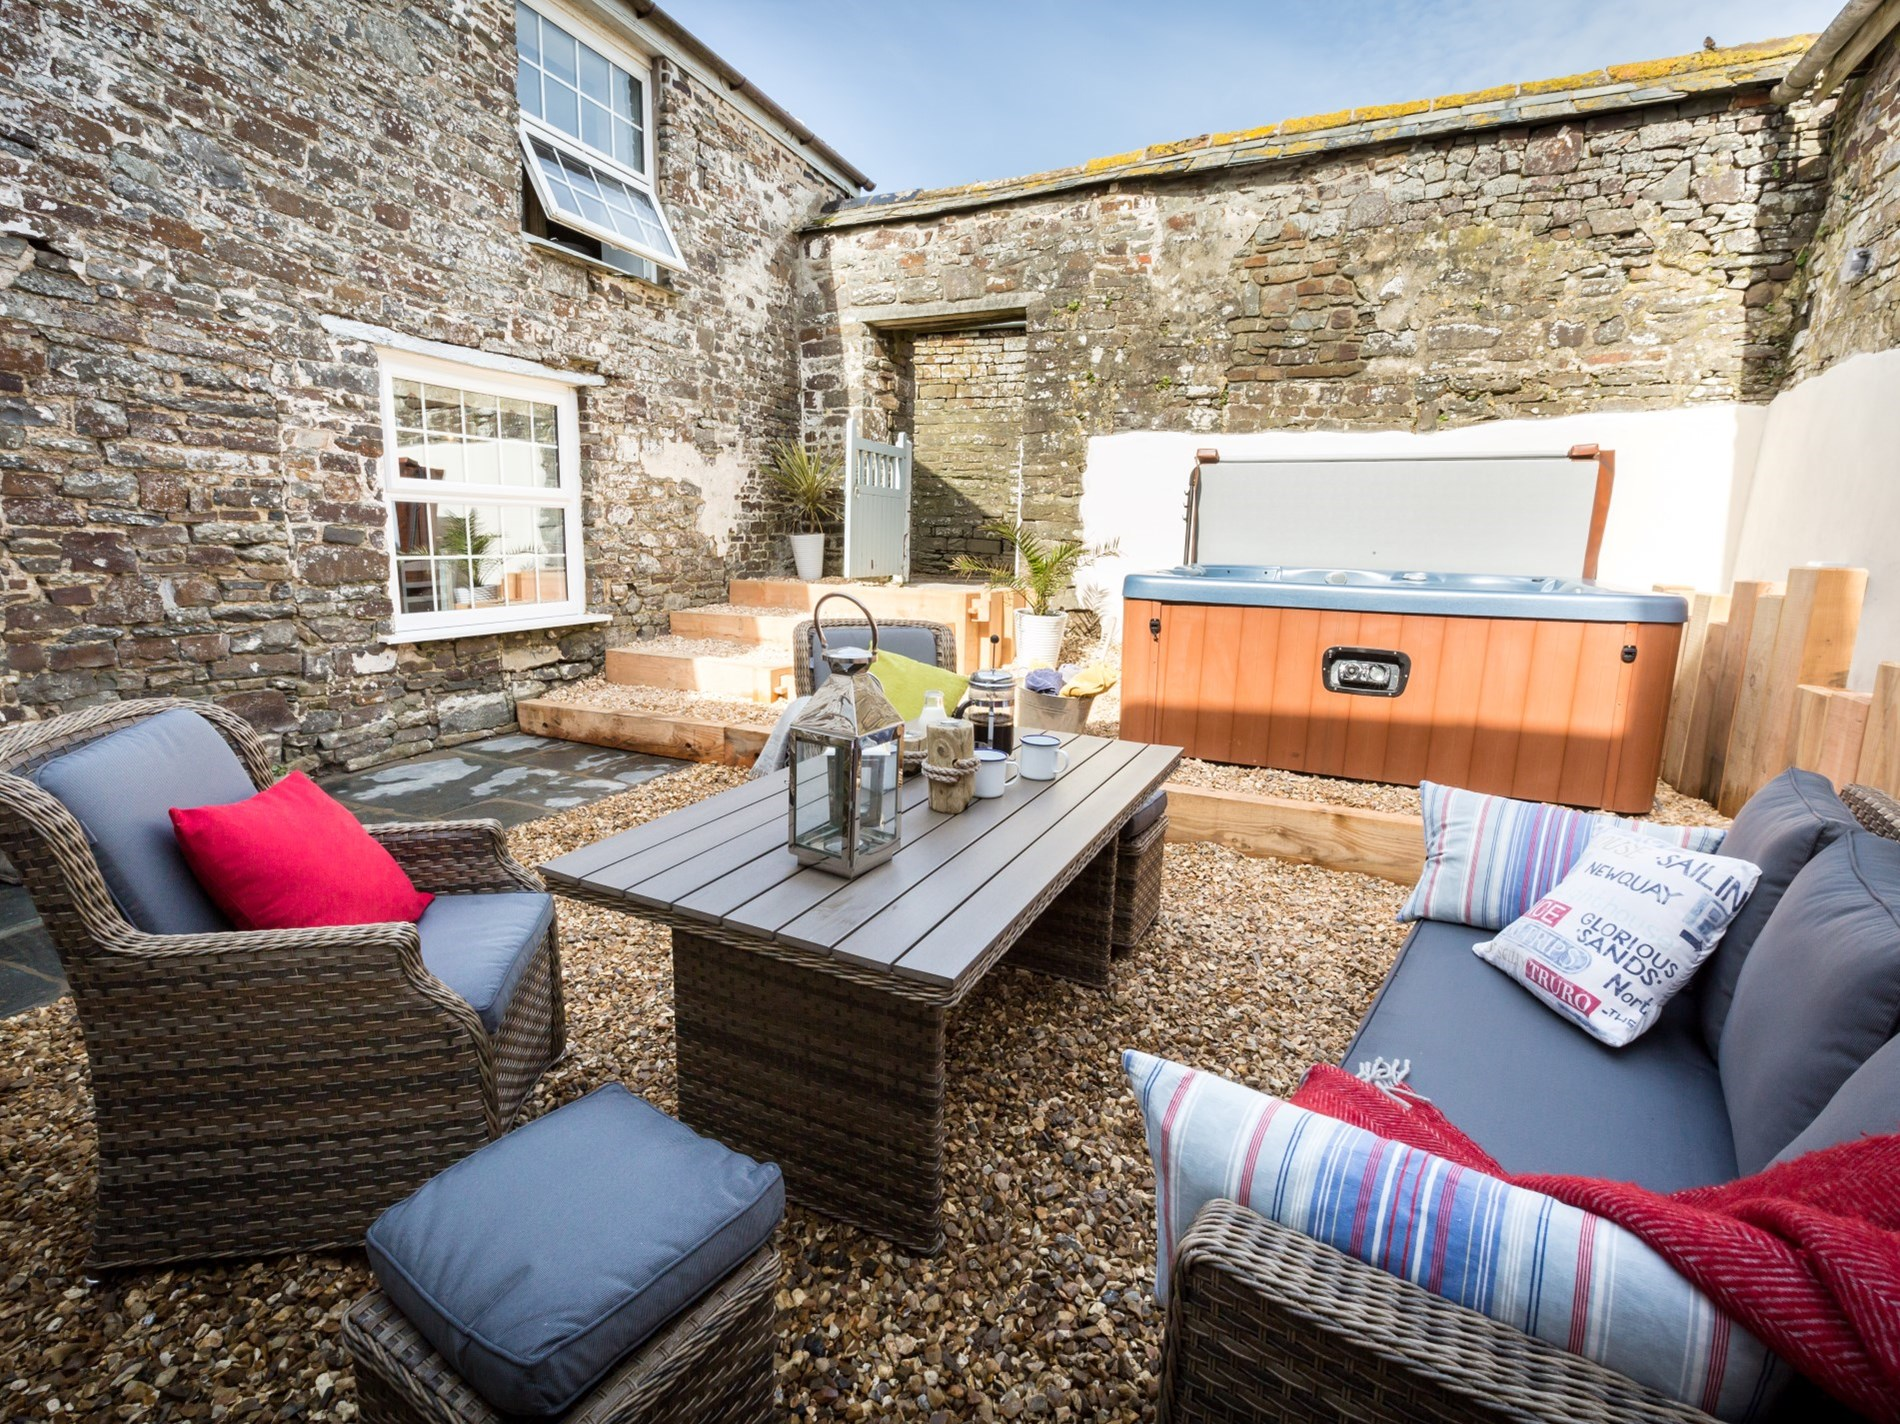 Sunny private courtyard, perfect for al fresco dining